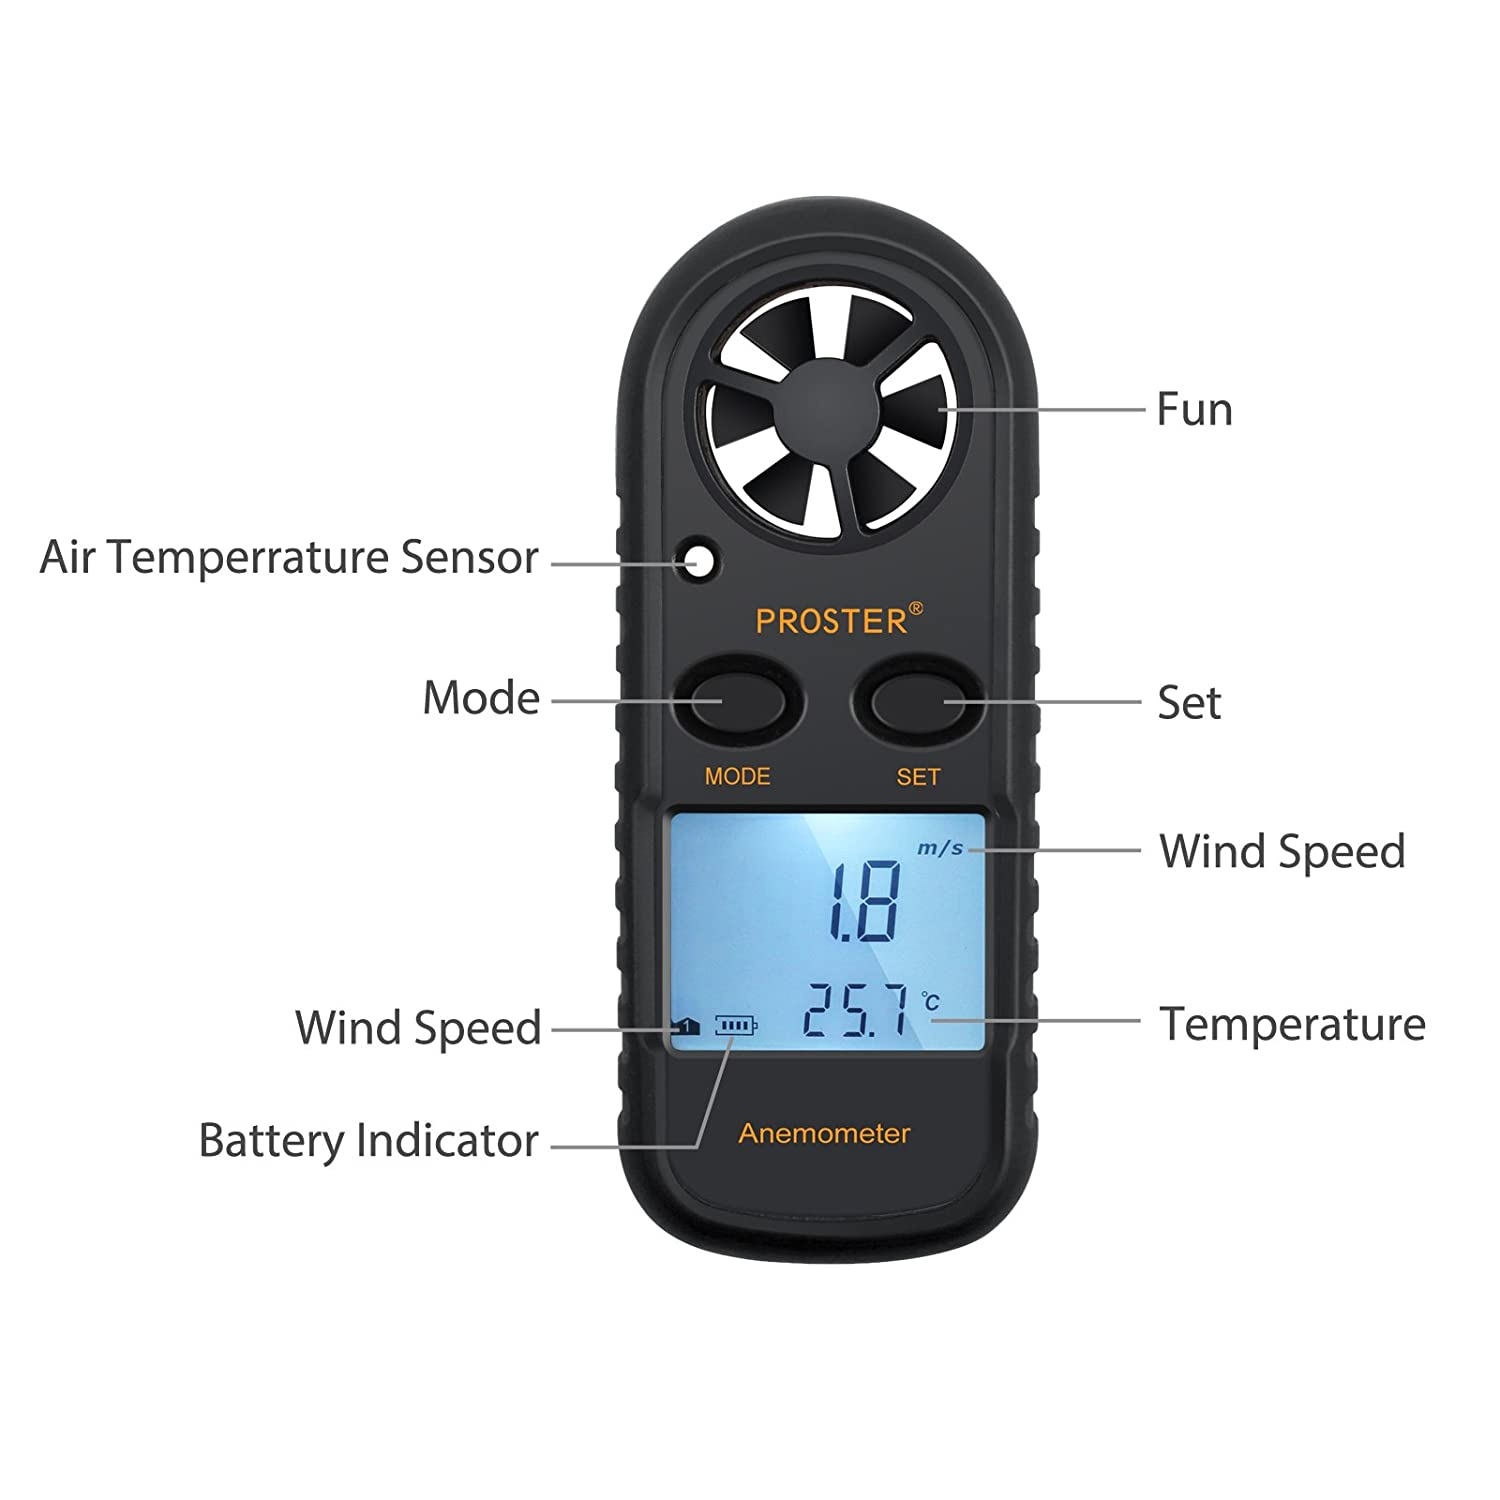 Proster Anemometers Handheld Wind Speed Meter Portable Wind Gauges Air Flow  Thermometer with LCD Backlight for Windsurfing Kiteflying Sailing Surfing